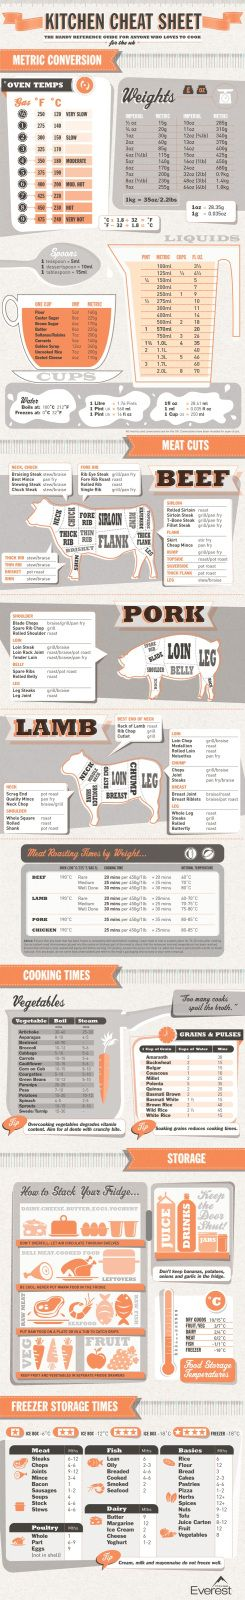 Kitchen Cheat Sheet. Very useful! :)